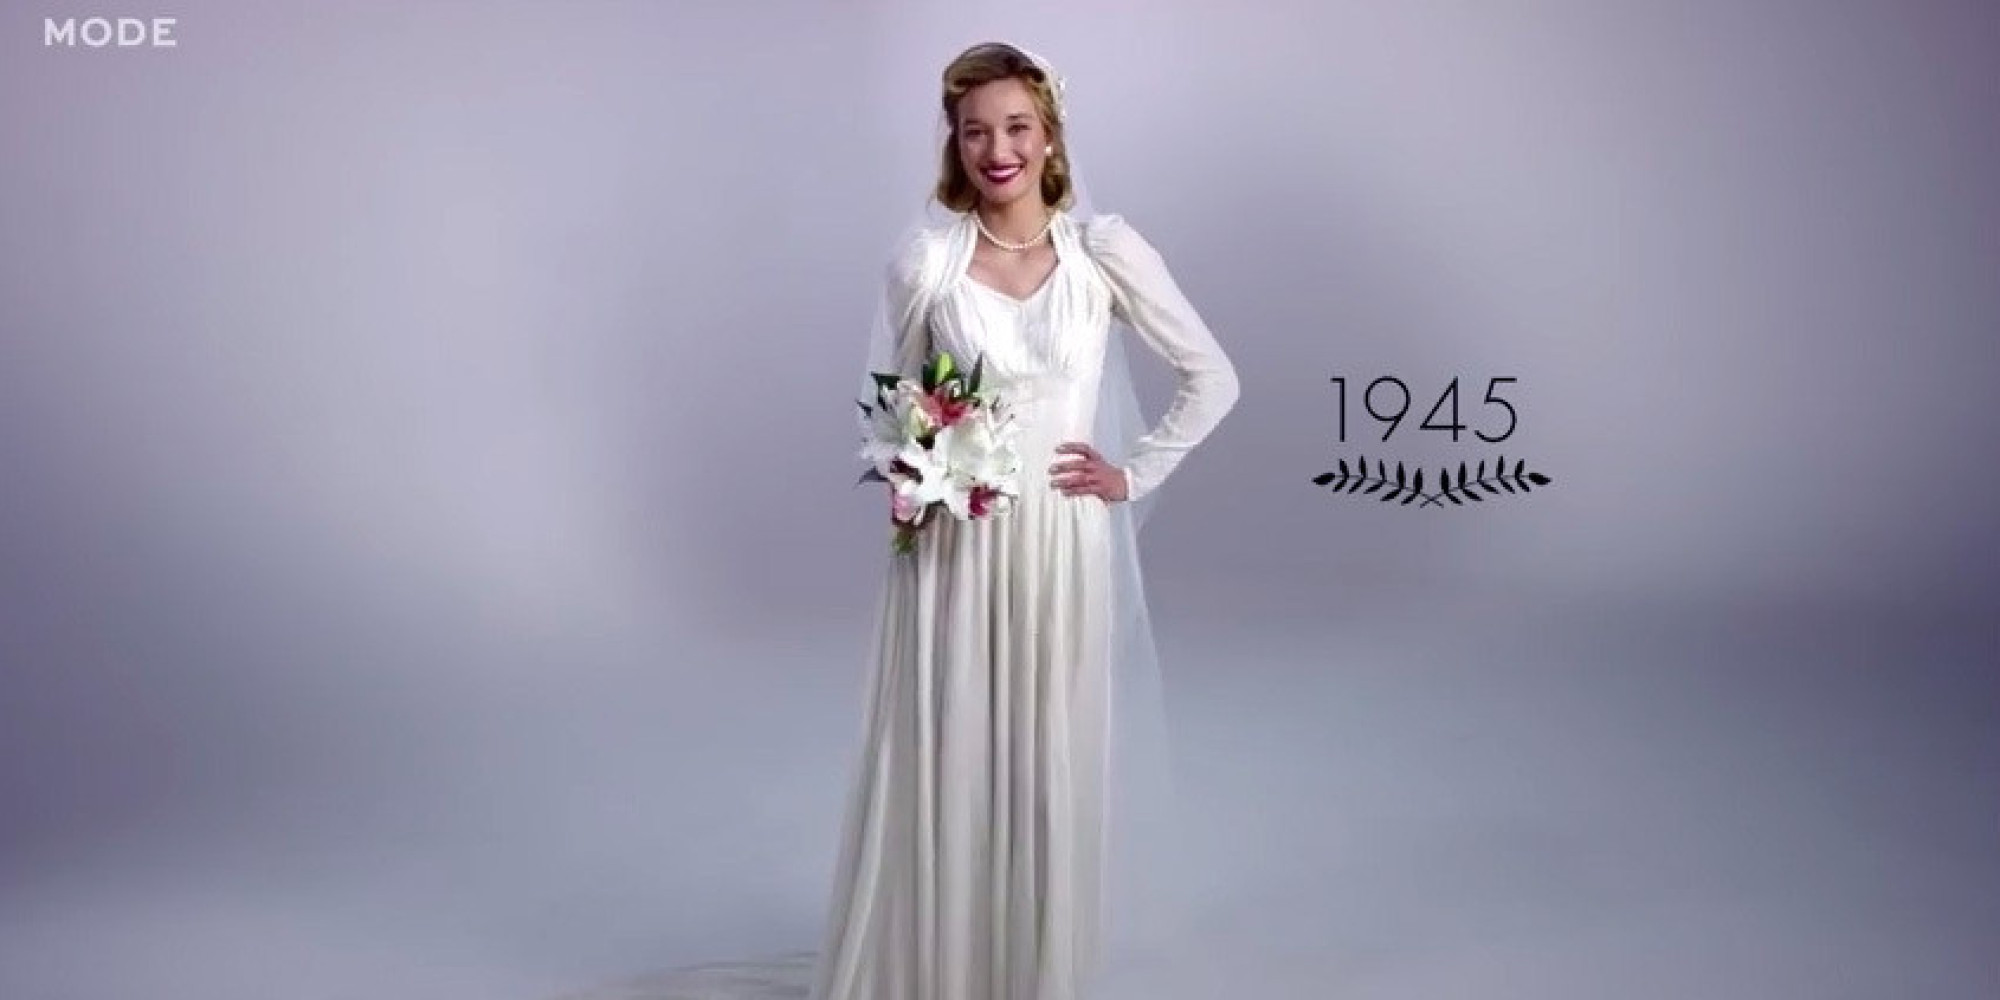 Wedding Dress For 40 Year Old Brides: WATCH: 100 Years Of Wedding Dresses In Under 3 Minutes